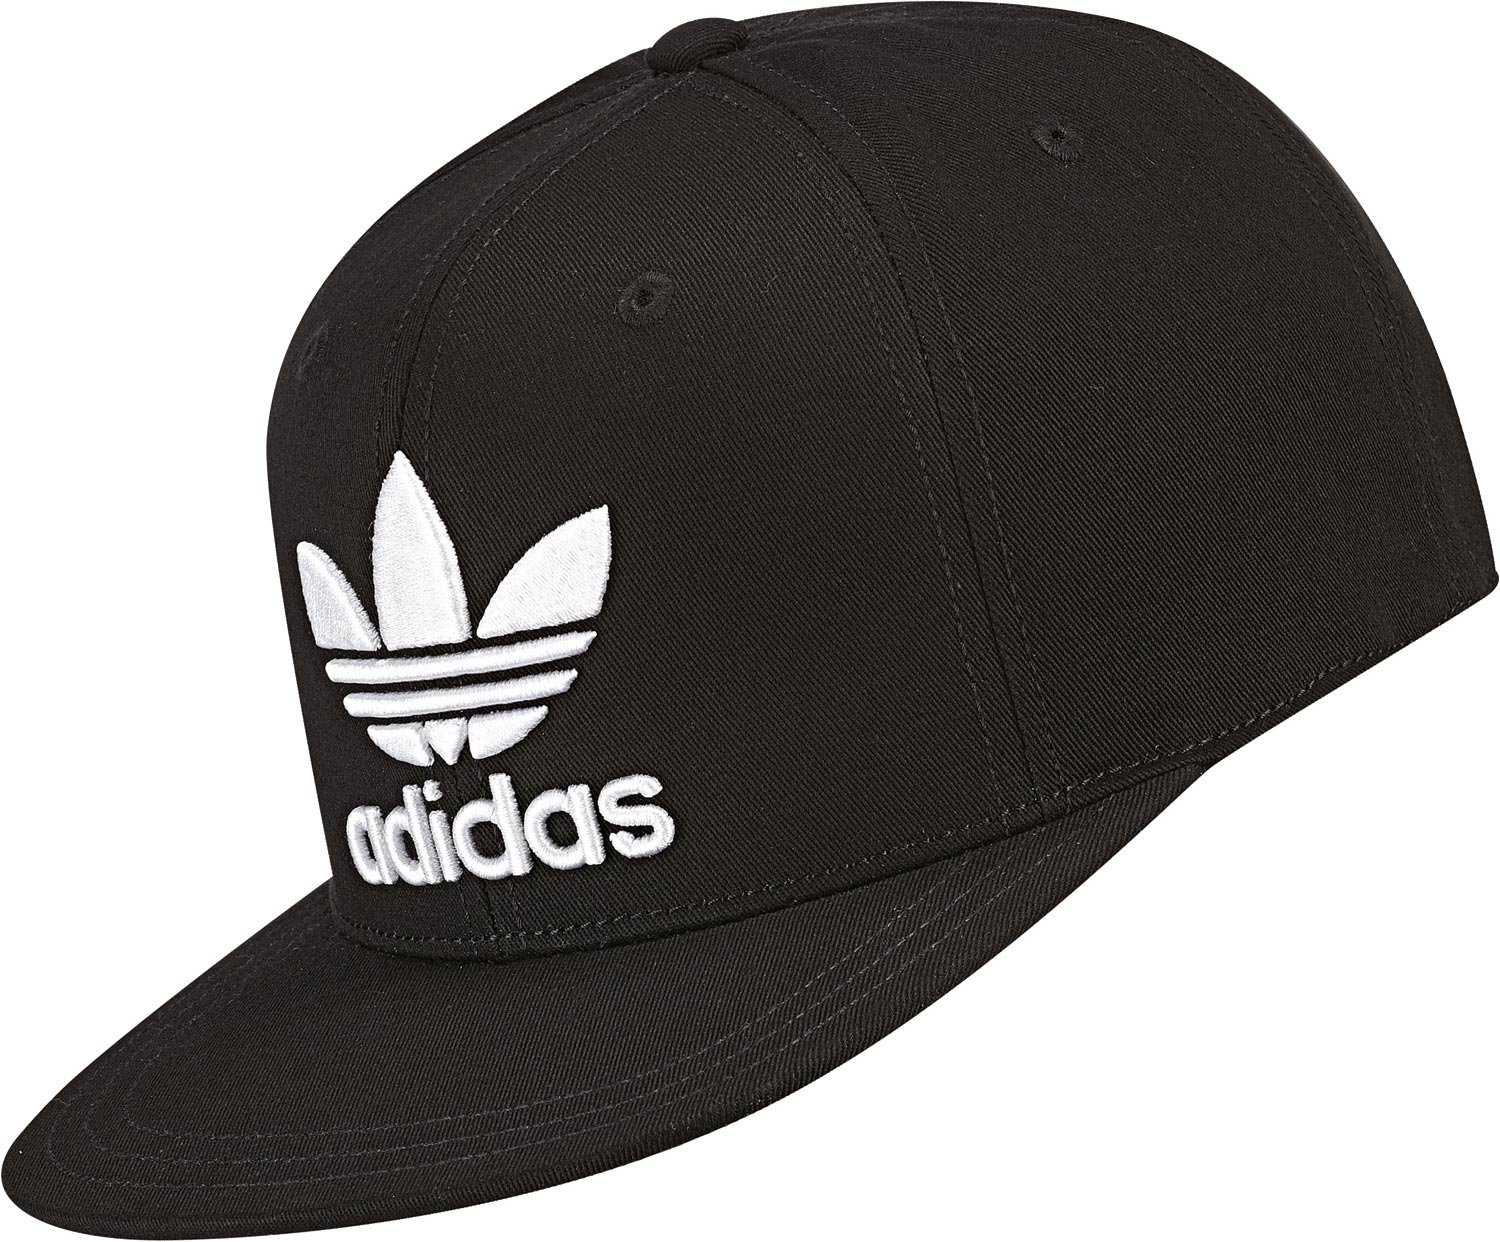 adidas hats for girls adidas cap trefoil accessories hats u0026 caps,adidas shoes for girls,official  authorized store LDPIBOU